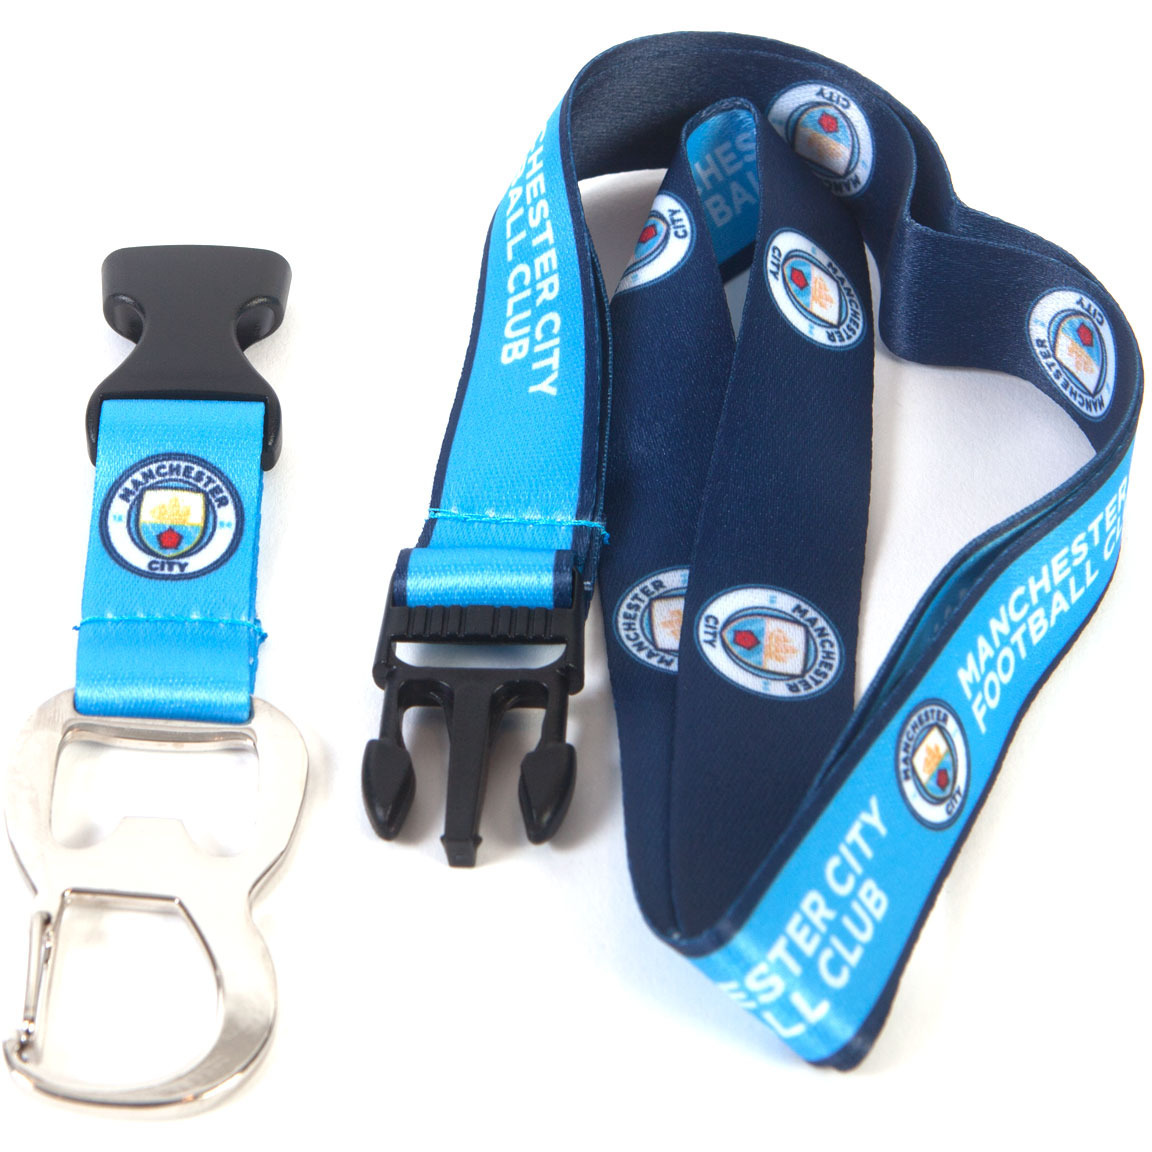 Manchester City F.C. Lanyard Bottle Opener WH